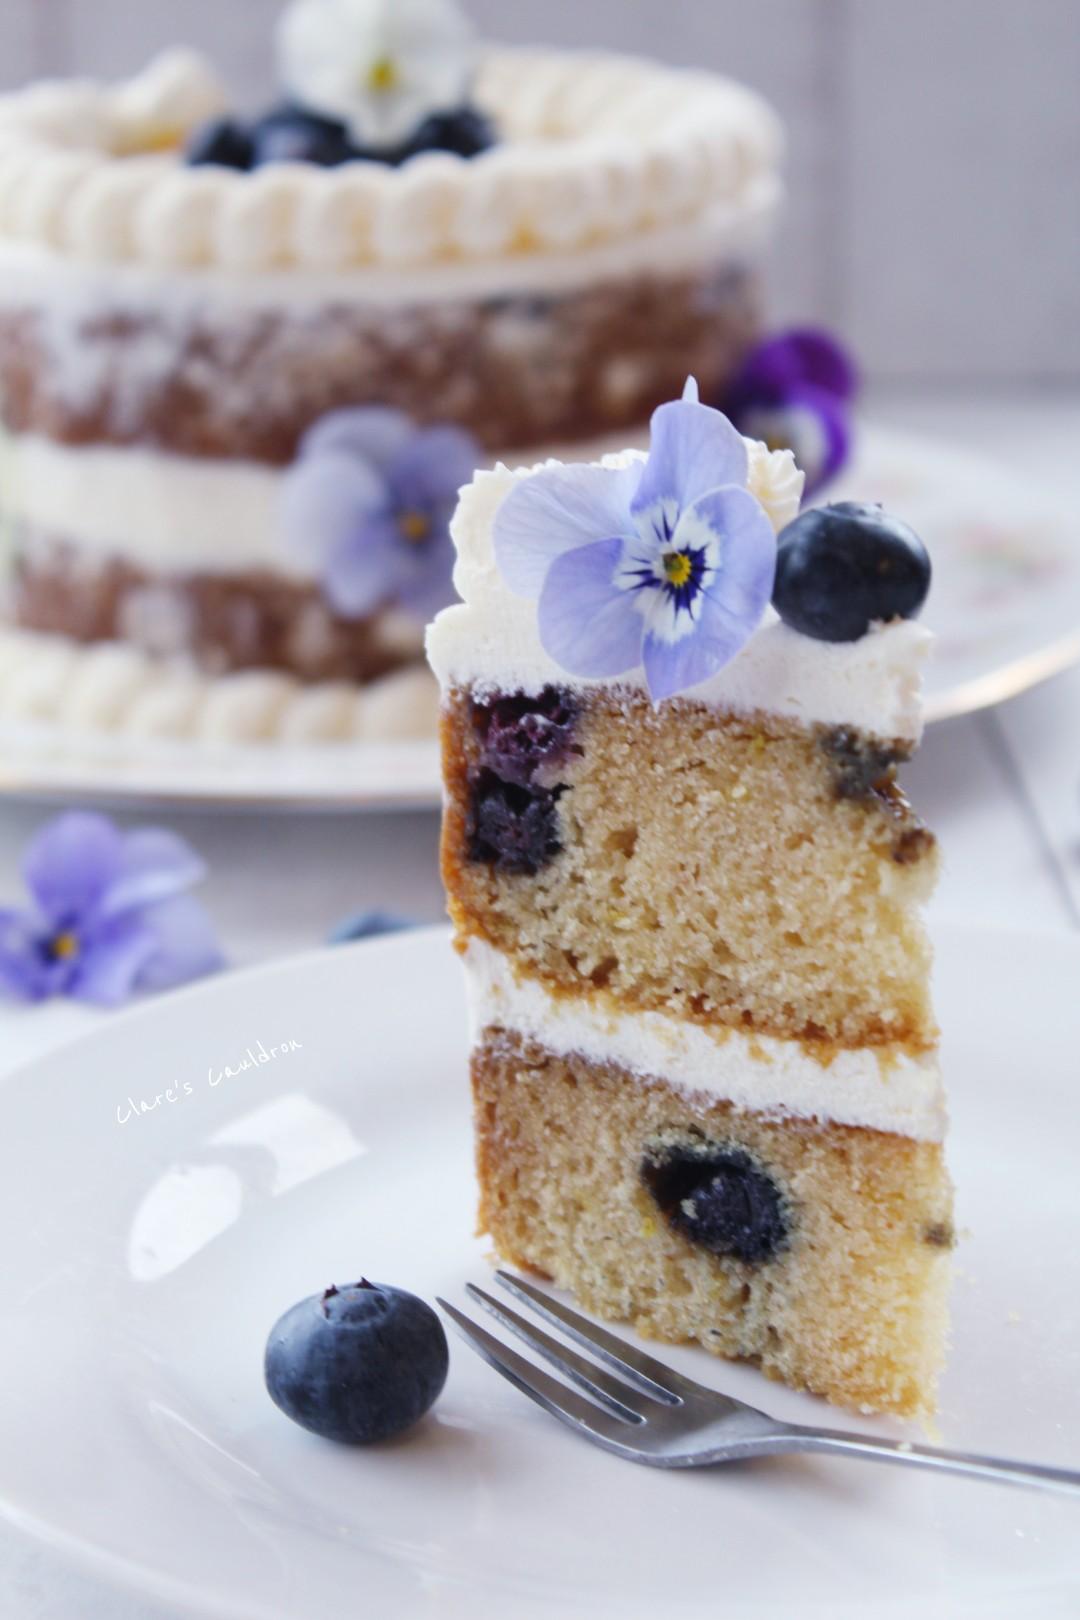 Lets Bake An Intolerance Lemon and Blueberry Cake